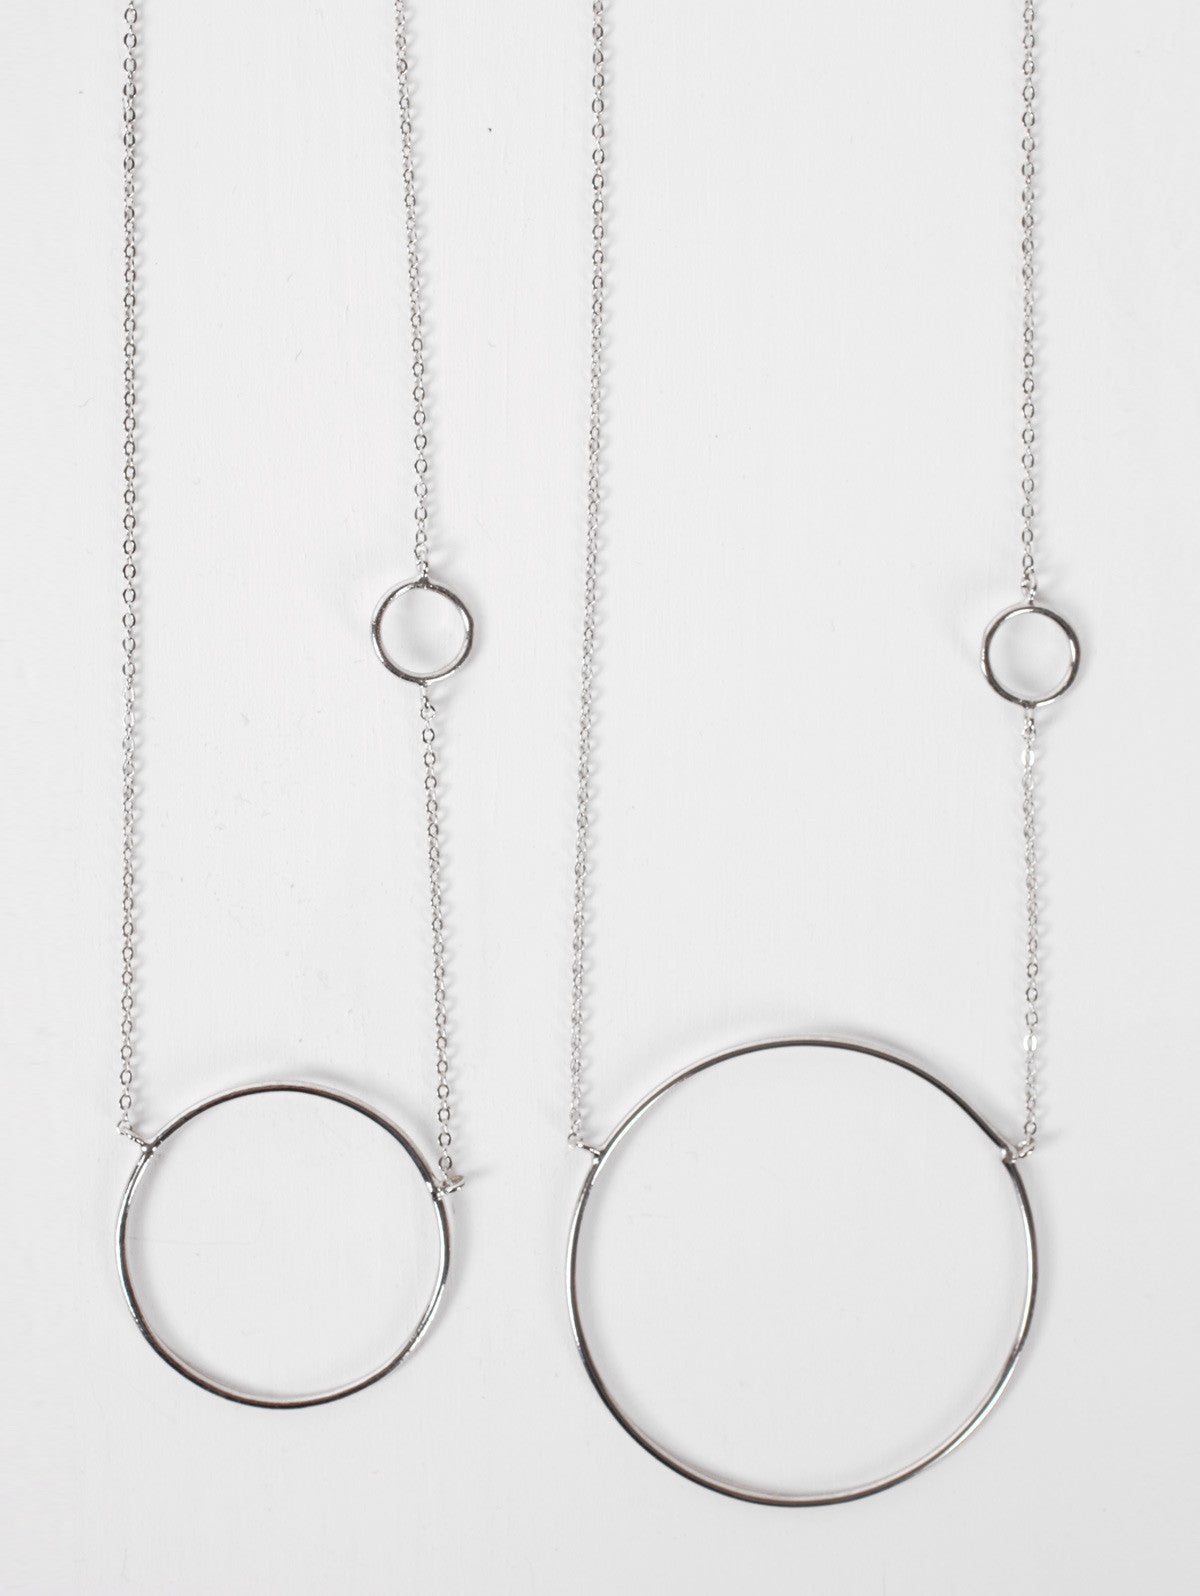 Silver Juno Necklaces